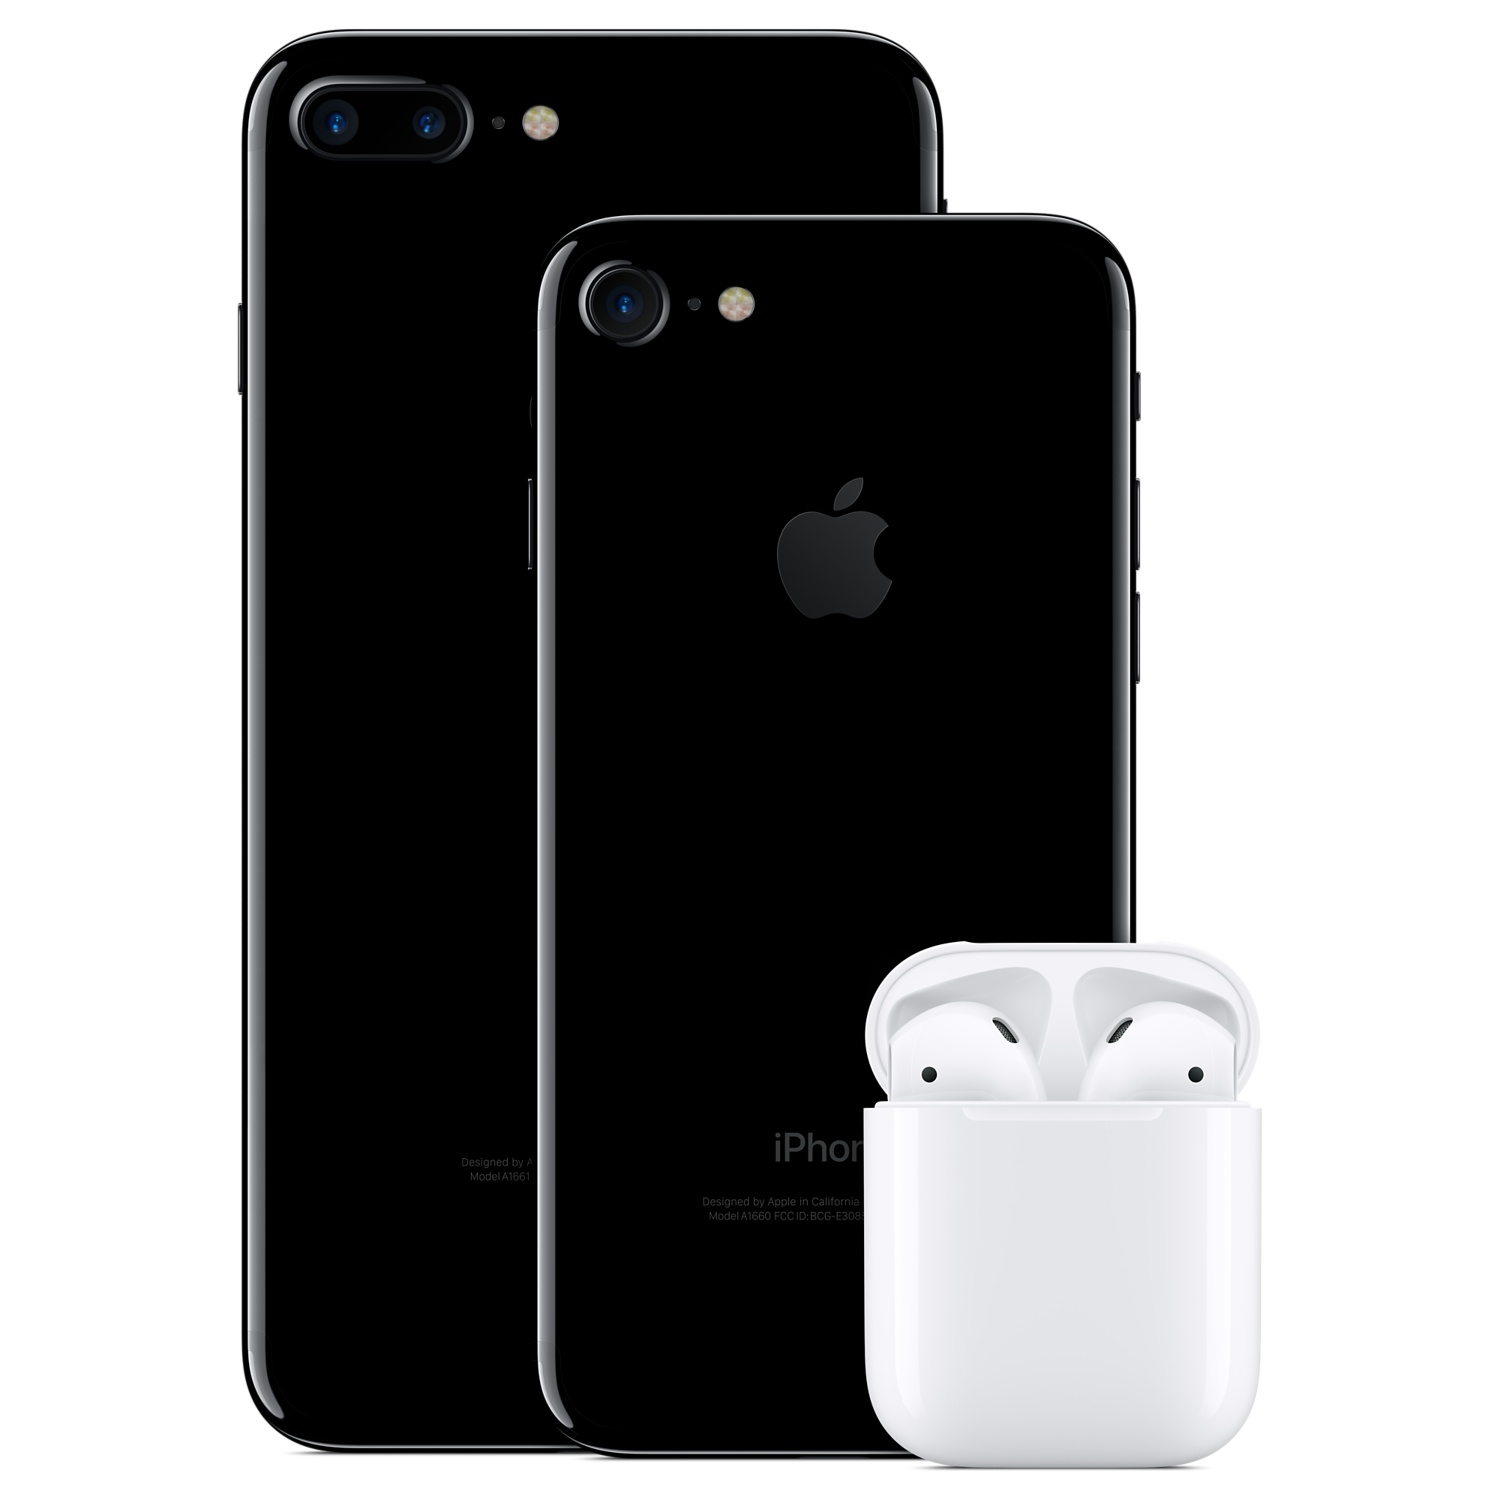 Apple Airpods with iPhones